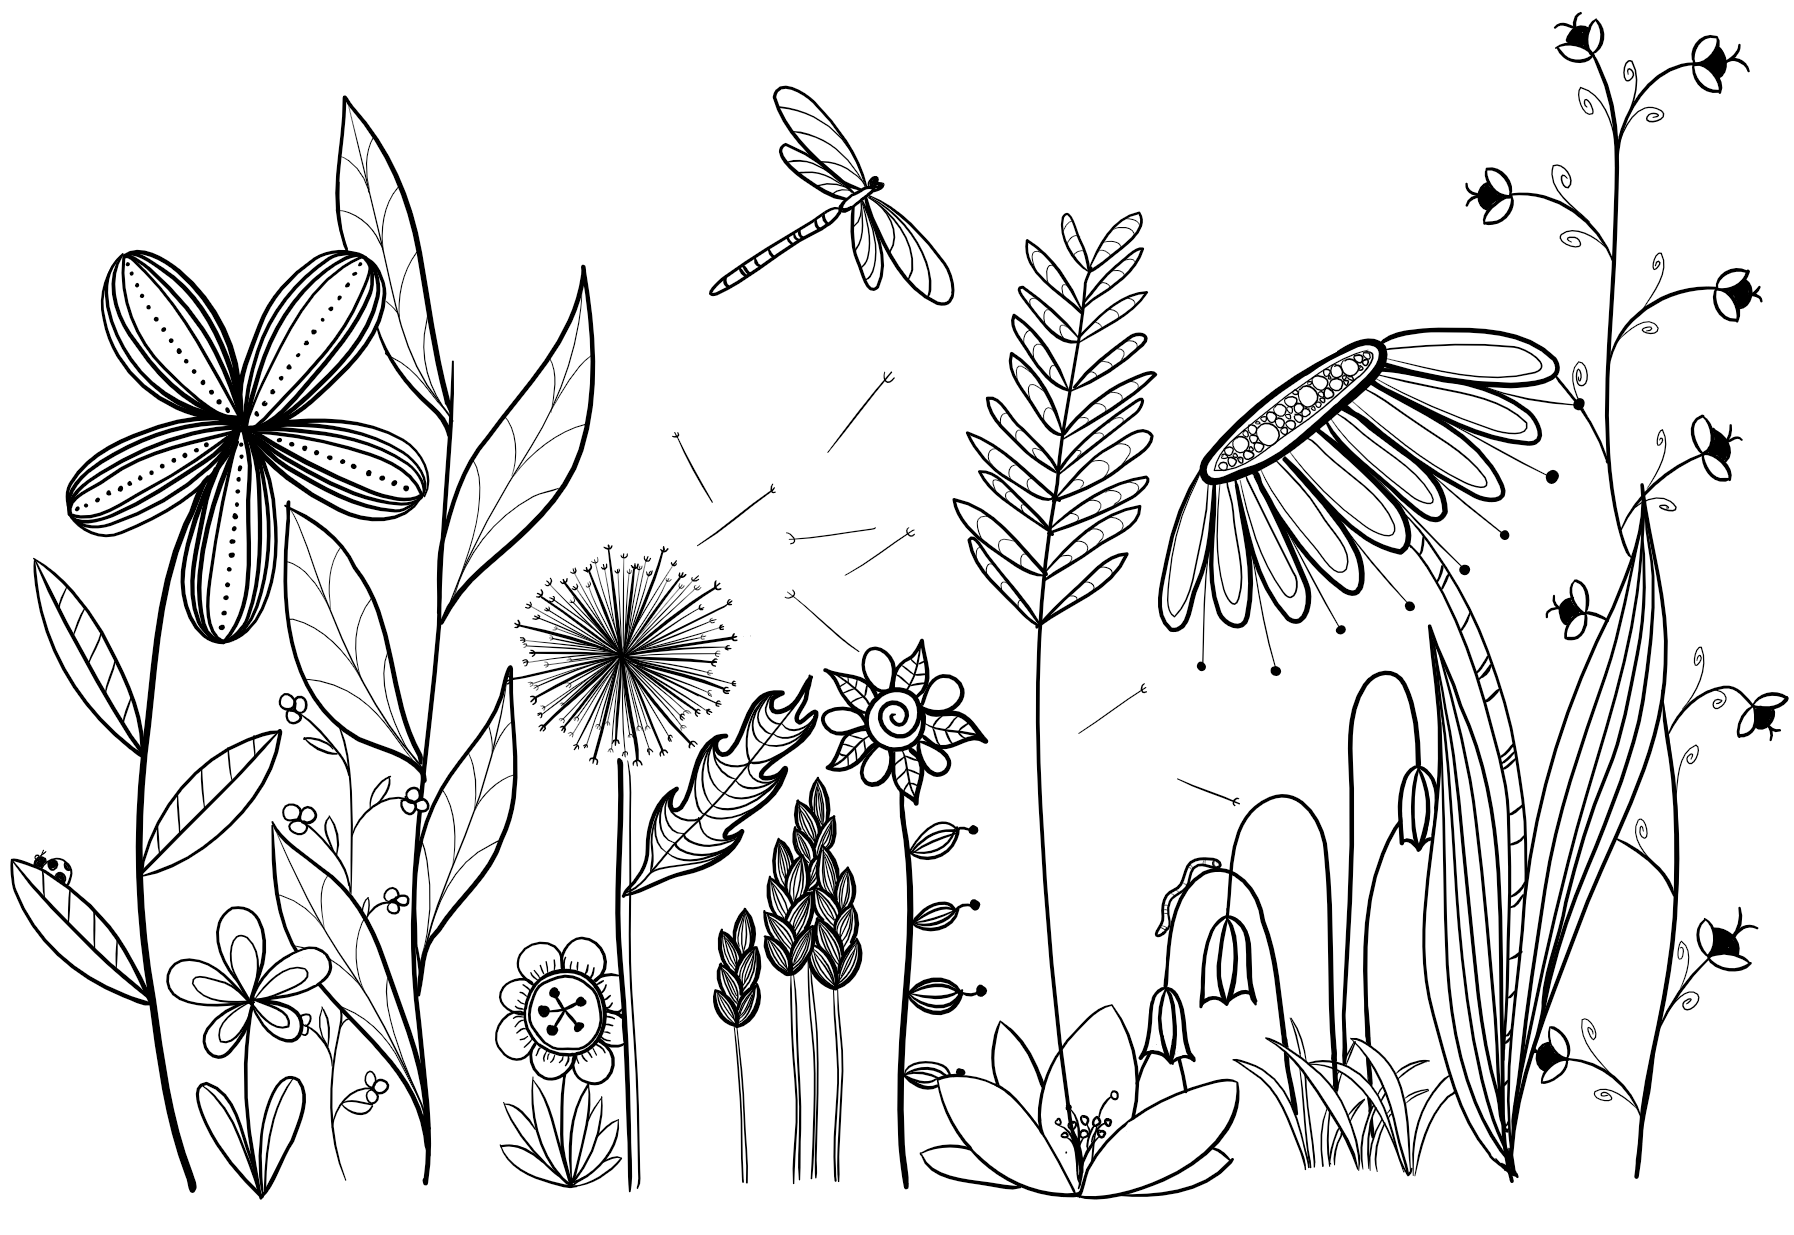 my original art, inspired by many. doodle, flower, line drawing